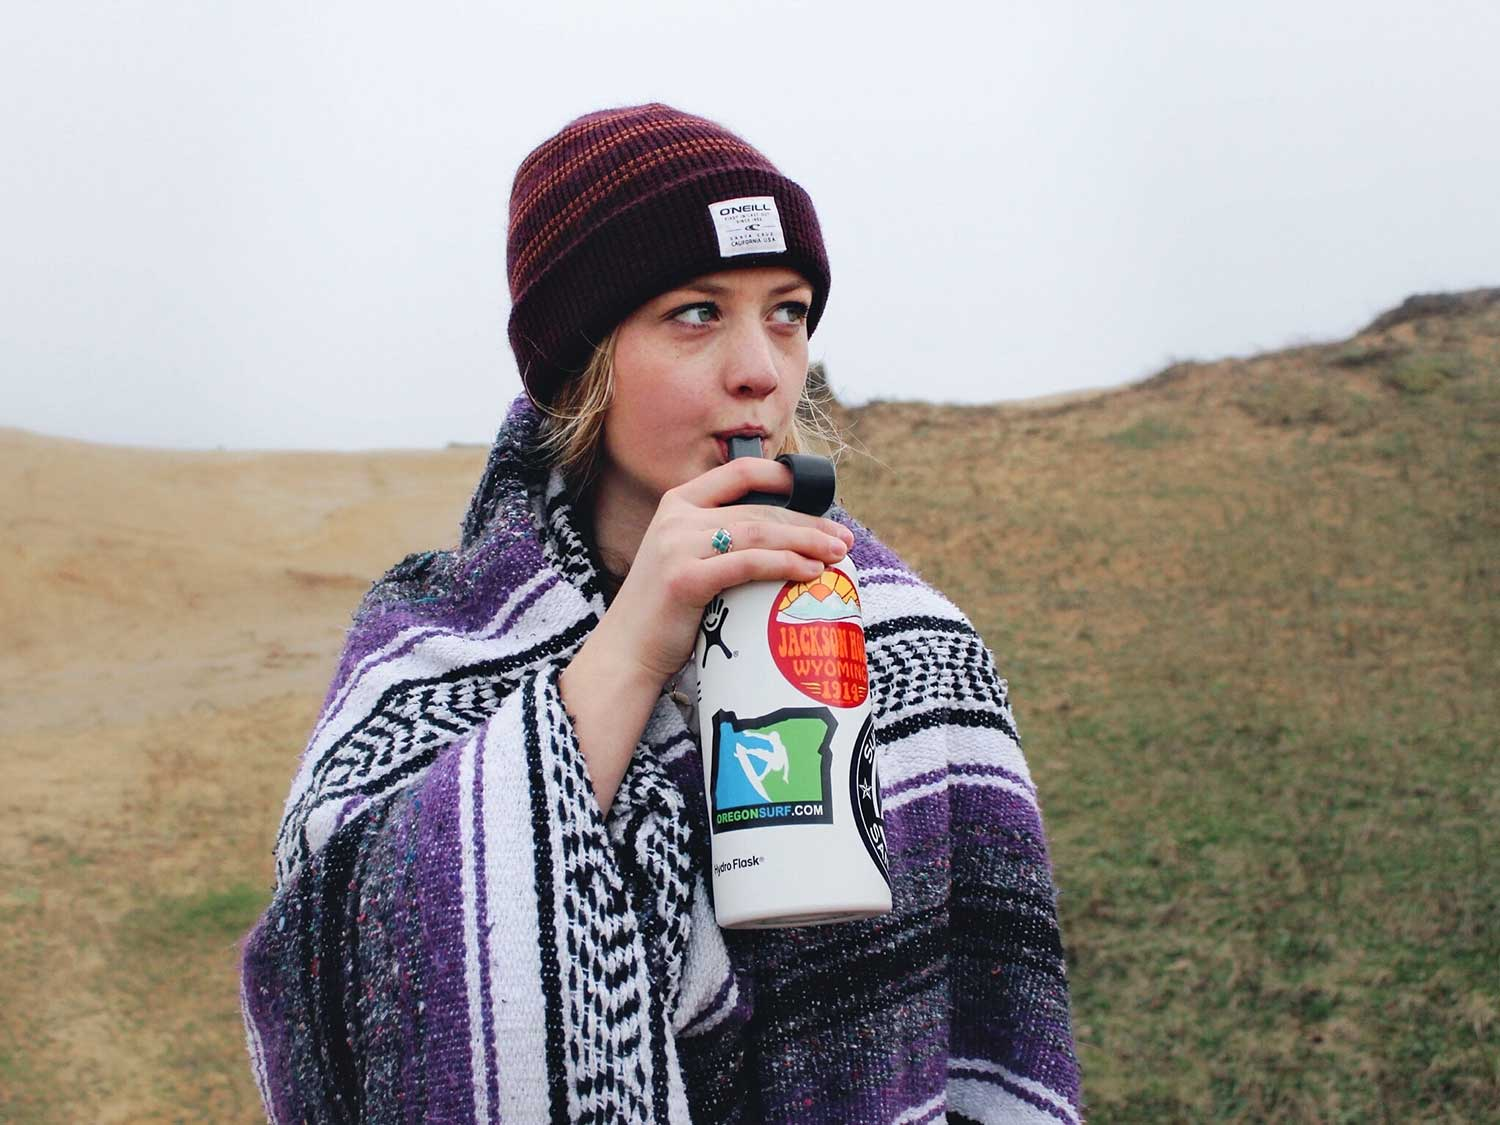 Woman sipping on straw in water bottle